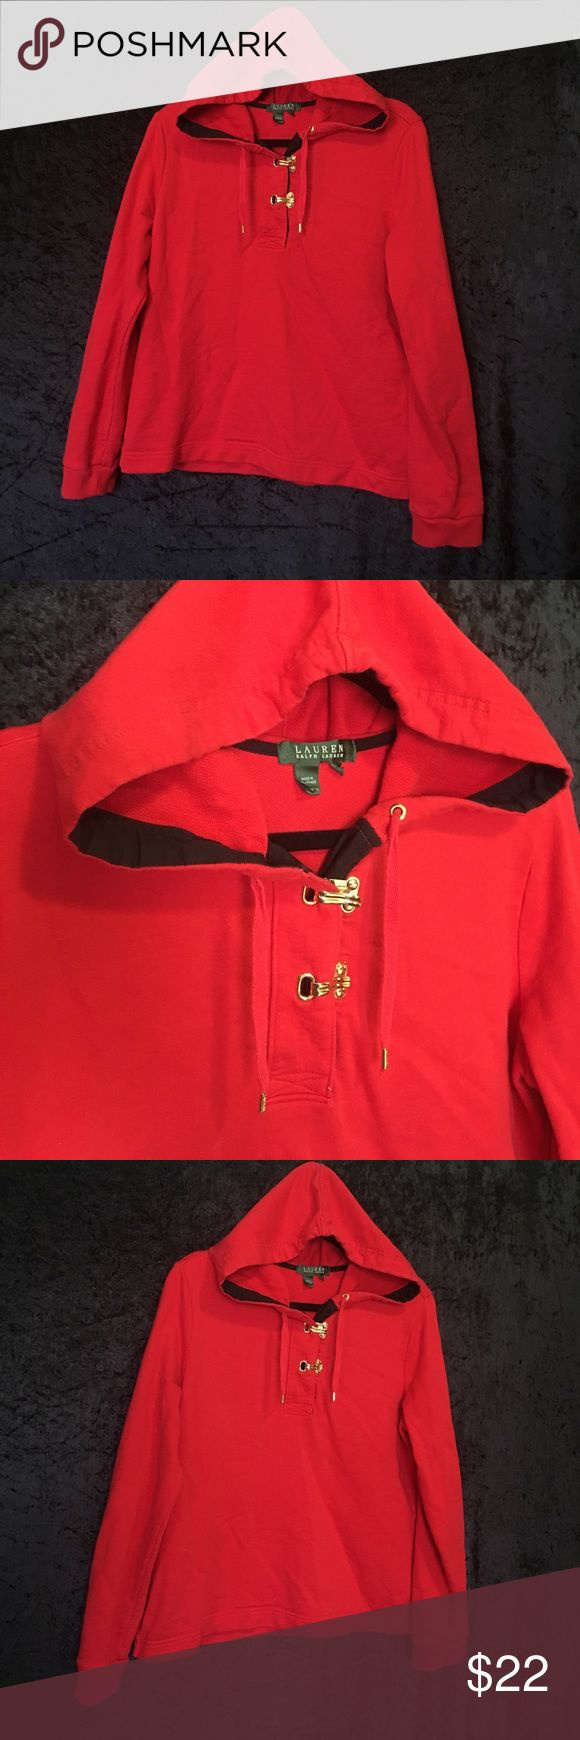 Ralph Lauren Hoodie This Ralph Lauren hoodie has gold embellished hooks, in tact draw strings, and a hood. No blemishes or flaws, great condition! Size large. Lauren Ralph Lauren Tops Sweatshirts & Hoodies